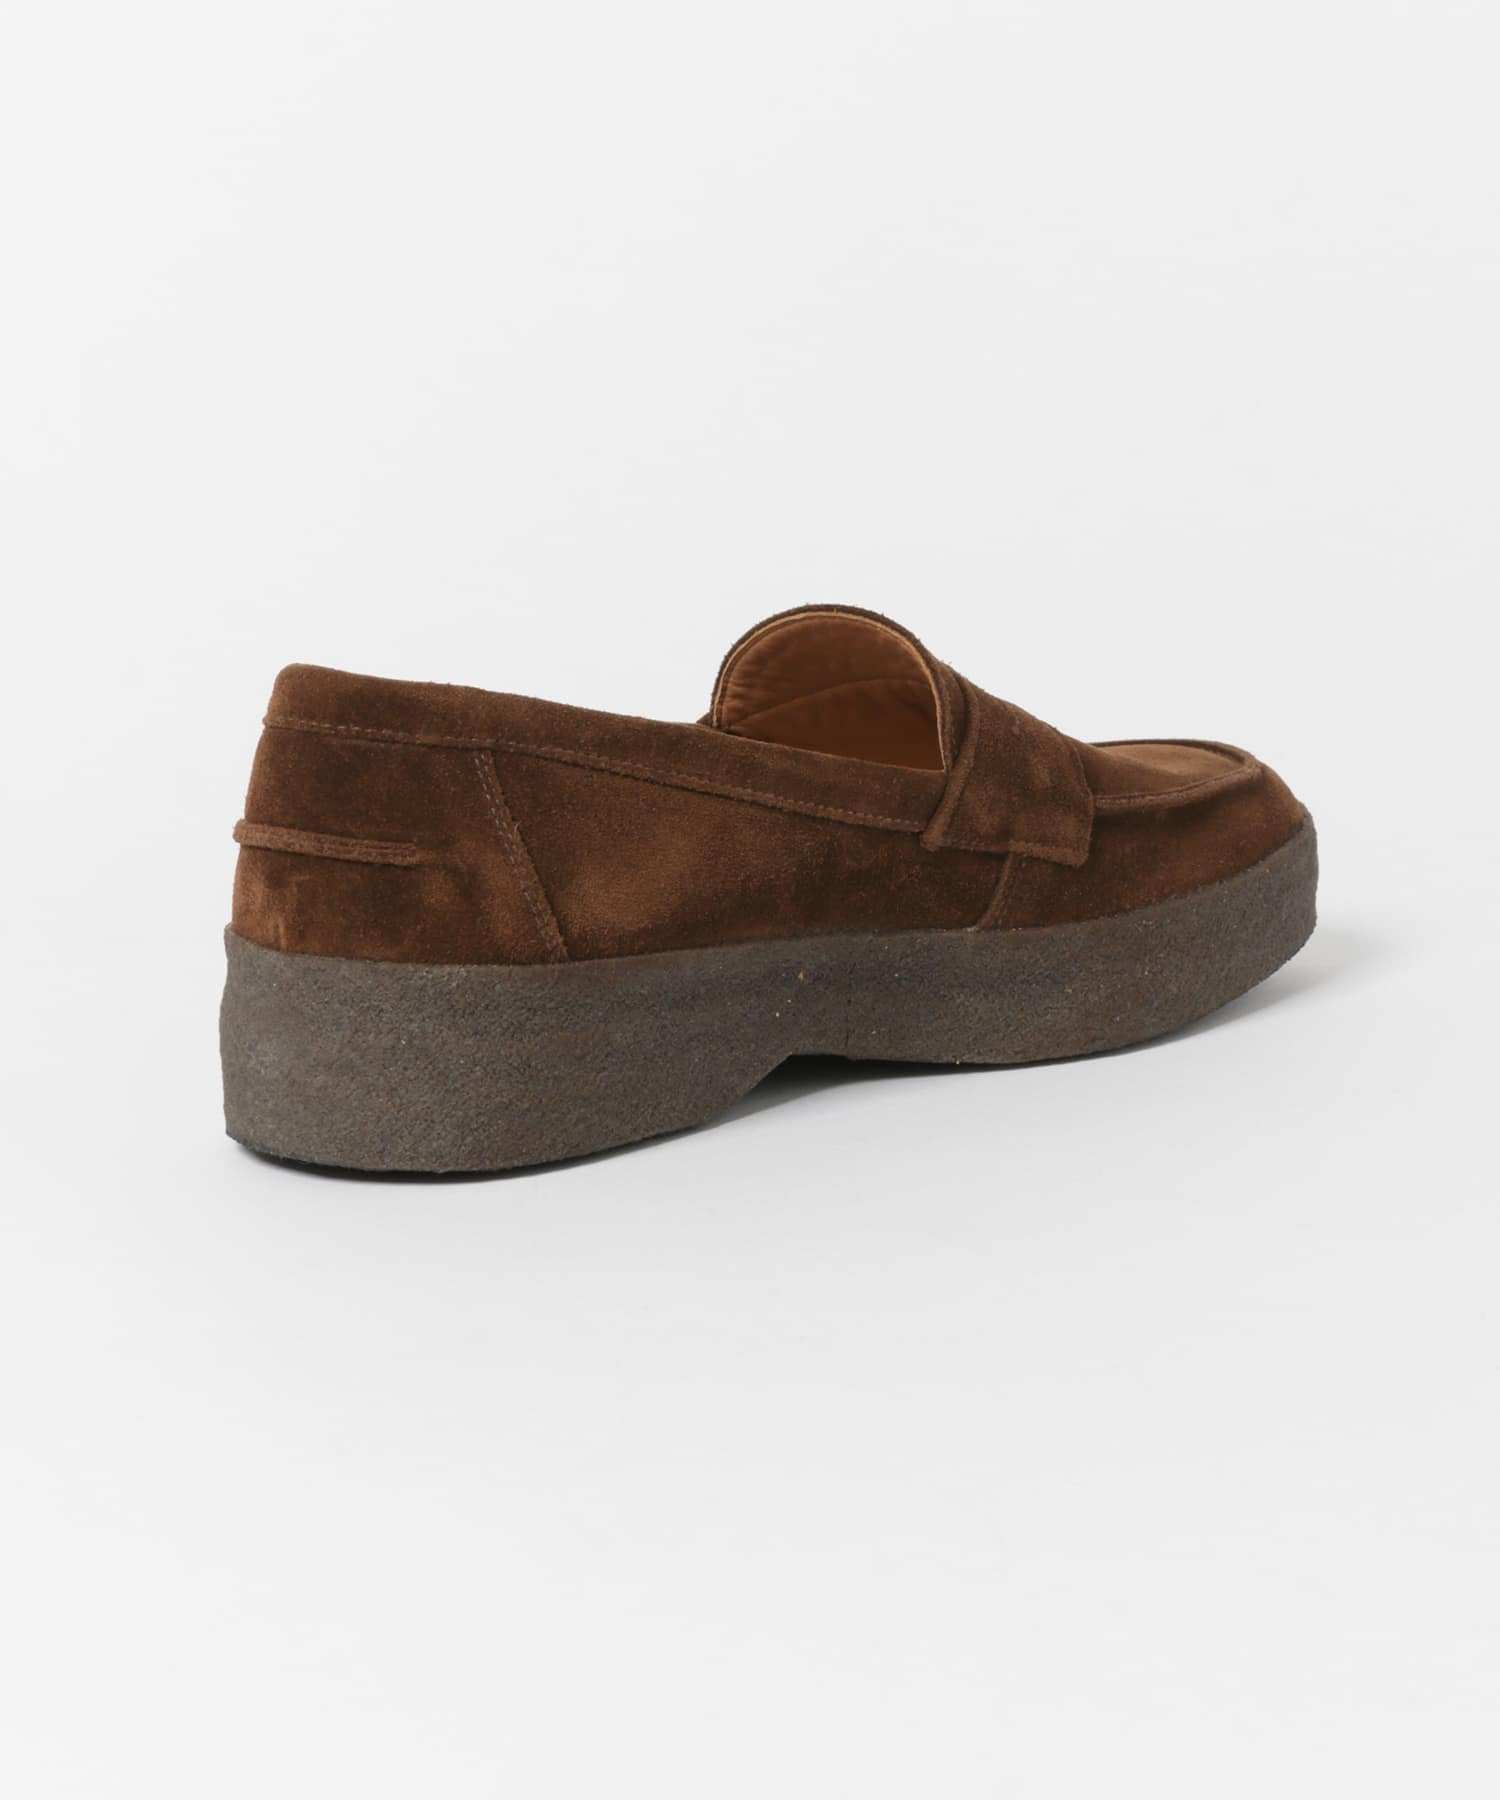 Urban Research Doors Mud Guard Butt Seam Loafer 2109-DM96: Polo Snuff Suede